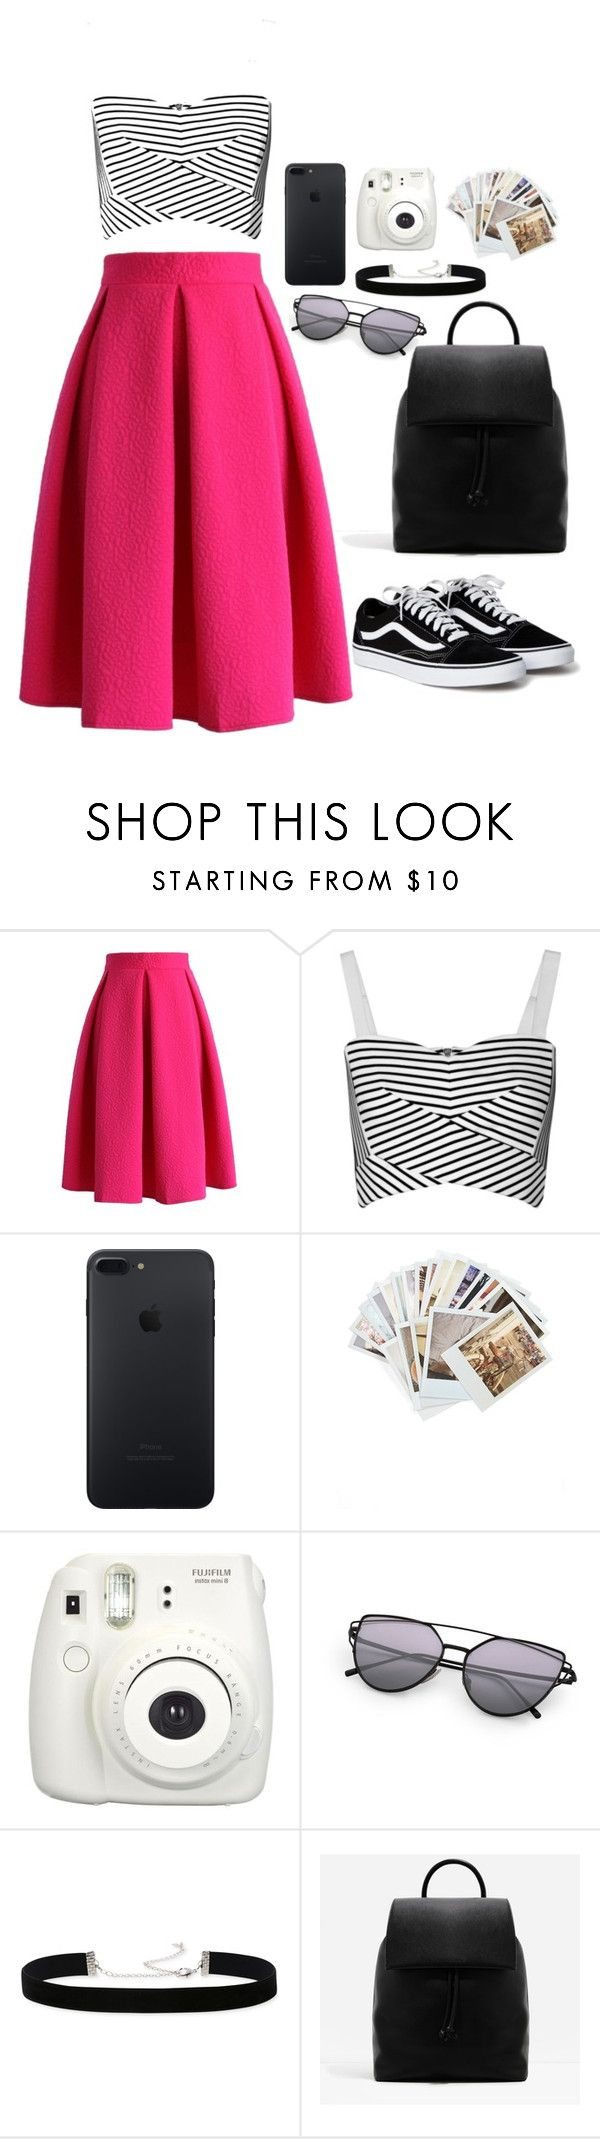 """""""tem rosa, é só achar"""" by caradnada ❤ liked on Polyvore featuring Chicwish, Rebecca Minkoff, Chronicle Books, Fujifilm, 2028 and CHARLES & KEITH"""